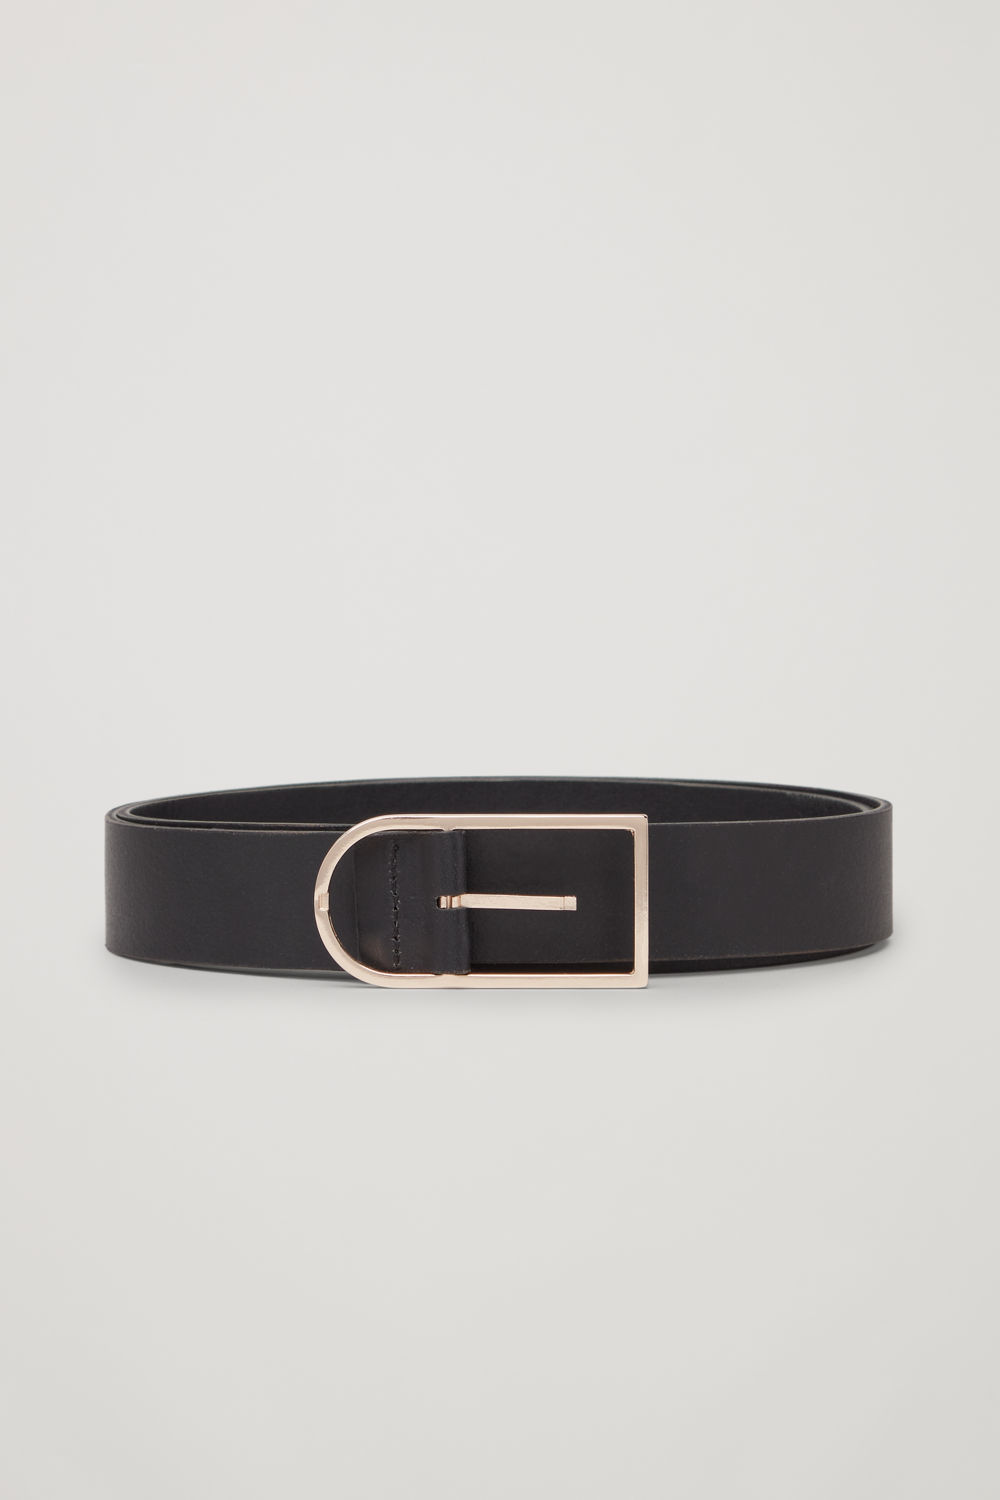 코스 COS SLIM-BUCKLE LEATHER BELT,Black